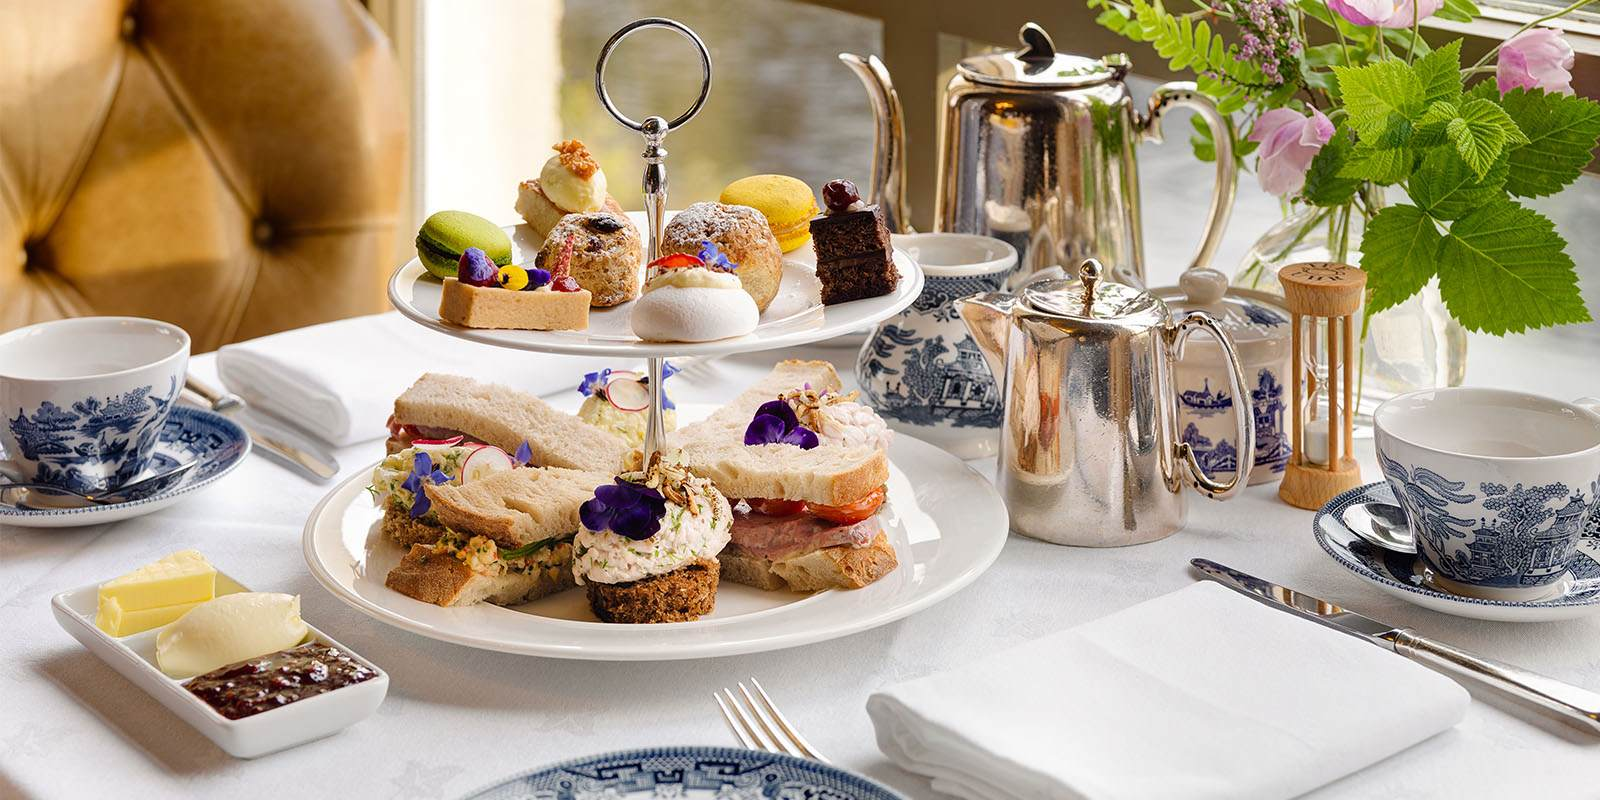 Traditional Afternoon Tea -     0  0  1  98  560  McKinney Shaw Travel LLC  4  1  657  14.0             Normal  0          false  false  false    EN-US  JA  X-NONE                                                                                                                                                                                                                                                                                                                                             /* Style Definitions */ table.MsoNormalTable {mso-style-name: